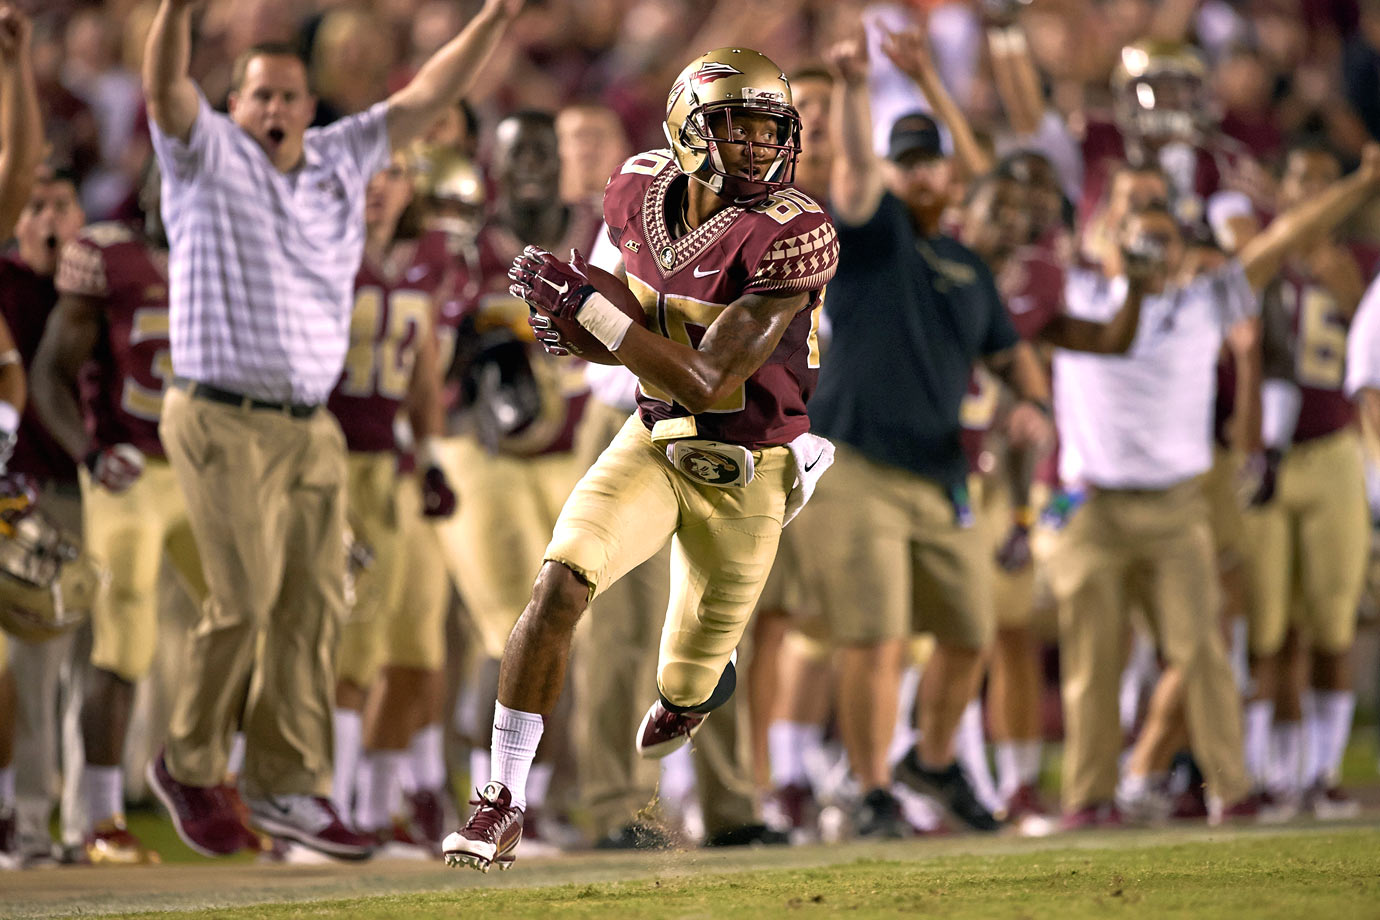 Greene set the school records for catches and receiving yards in a highly productive career for the Seminoles.